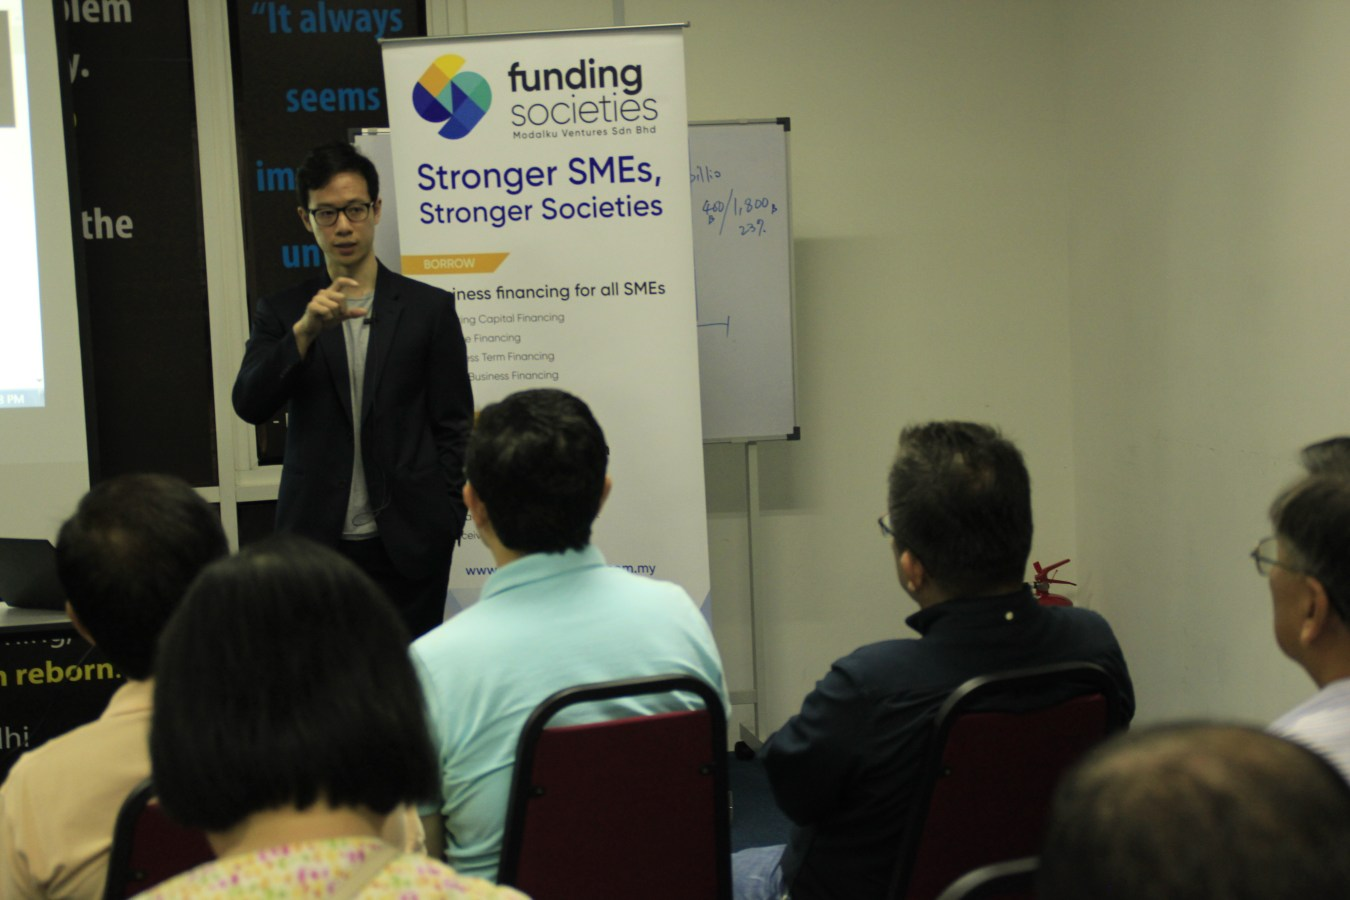 CEO Wong Kah Meng at Funding Societies Malaysia's 2nd Investor Seminar